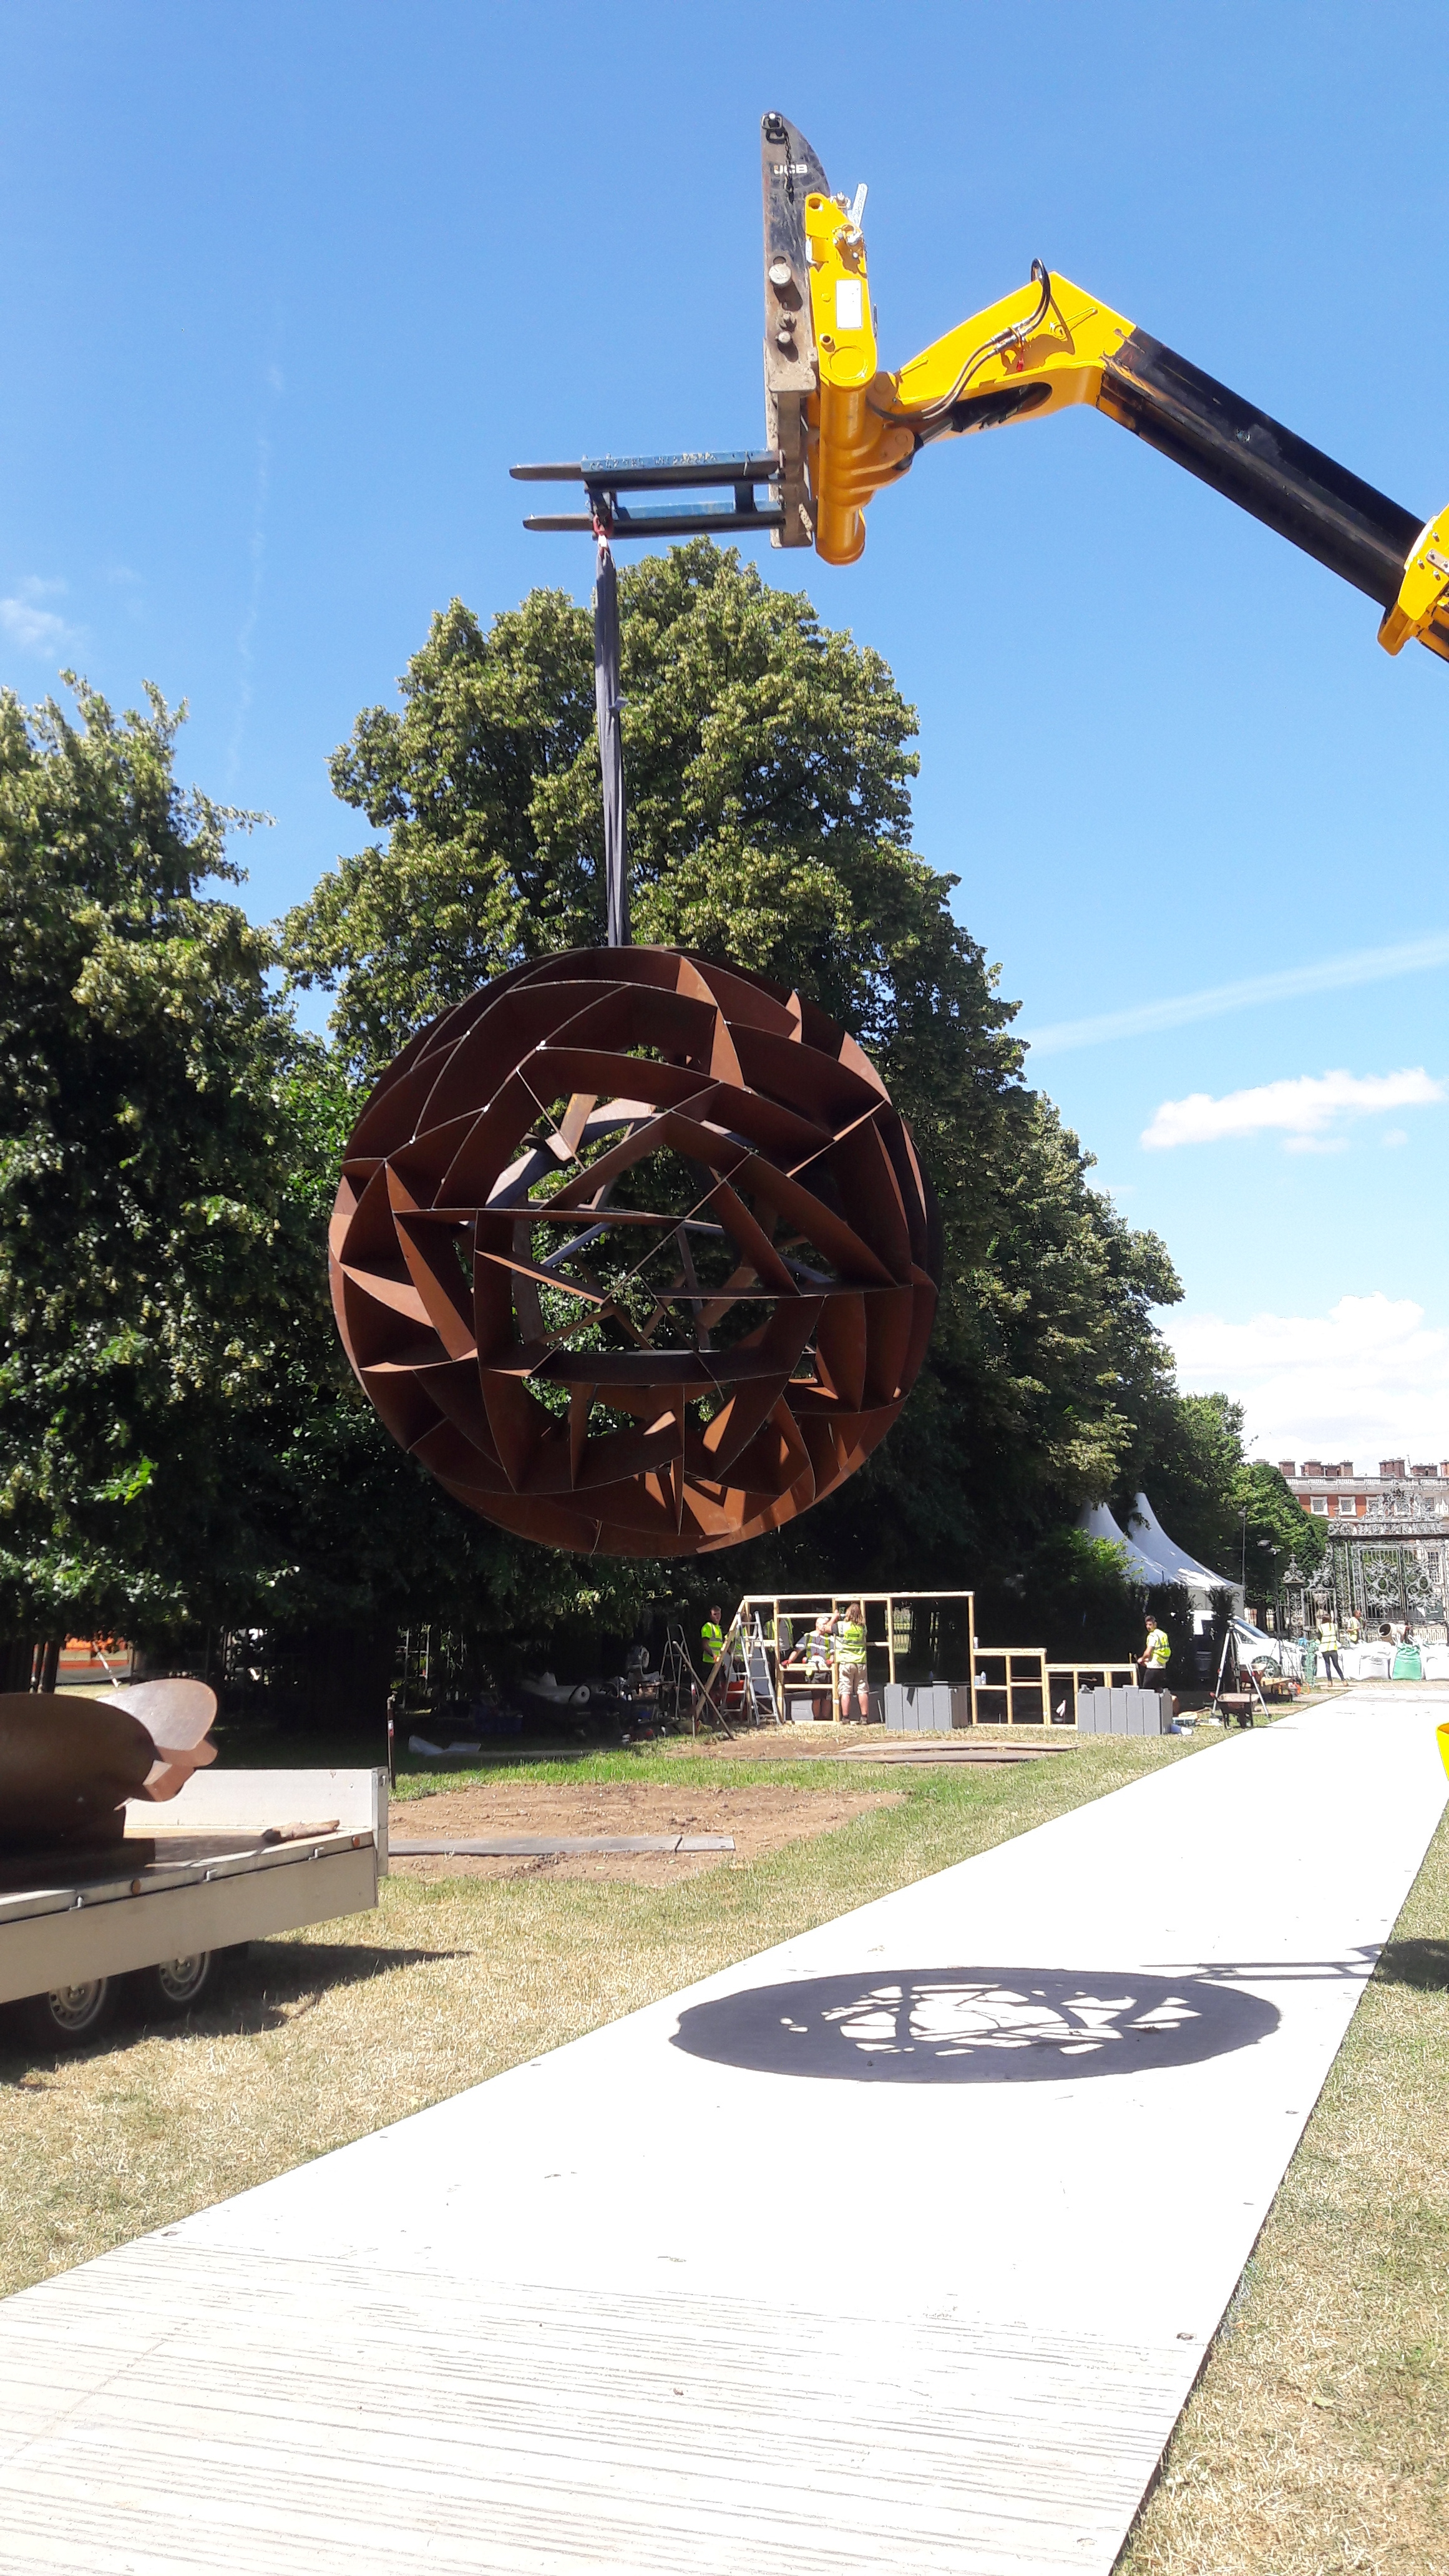 The 2.5m Corten steel sphere, weighing close to 600kg, being lifted into place.